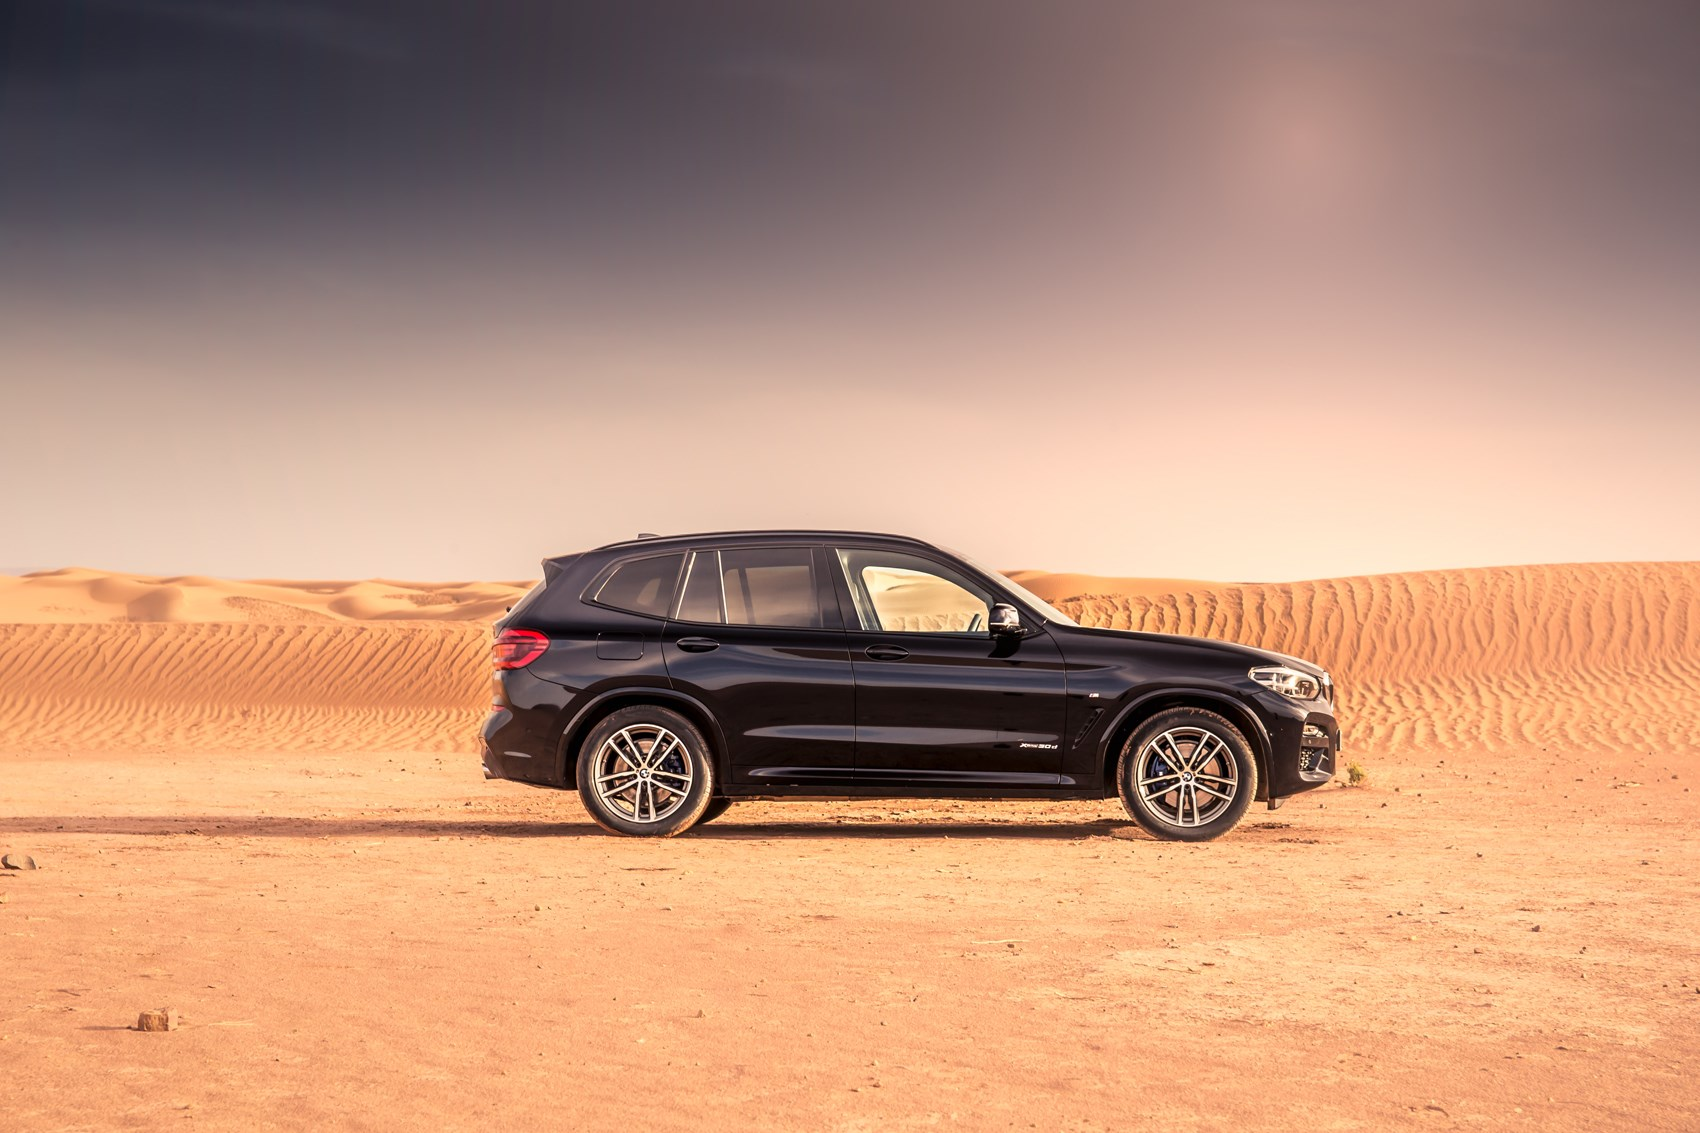 Black 2017 BMW X3 SUV side elevation on sand